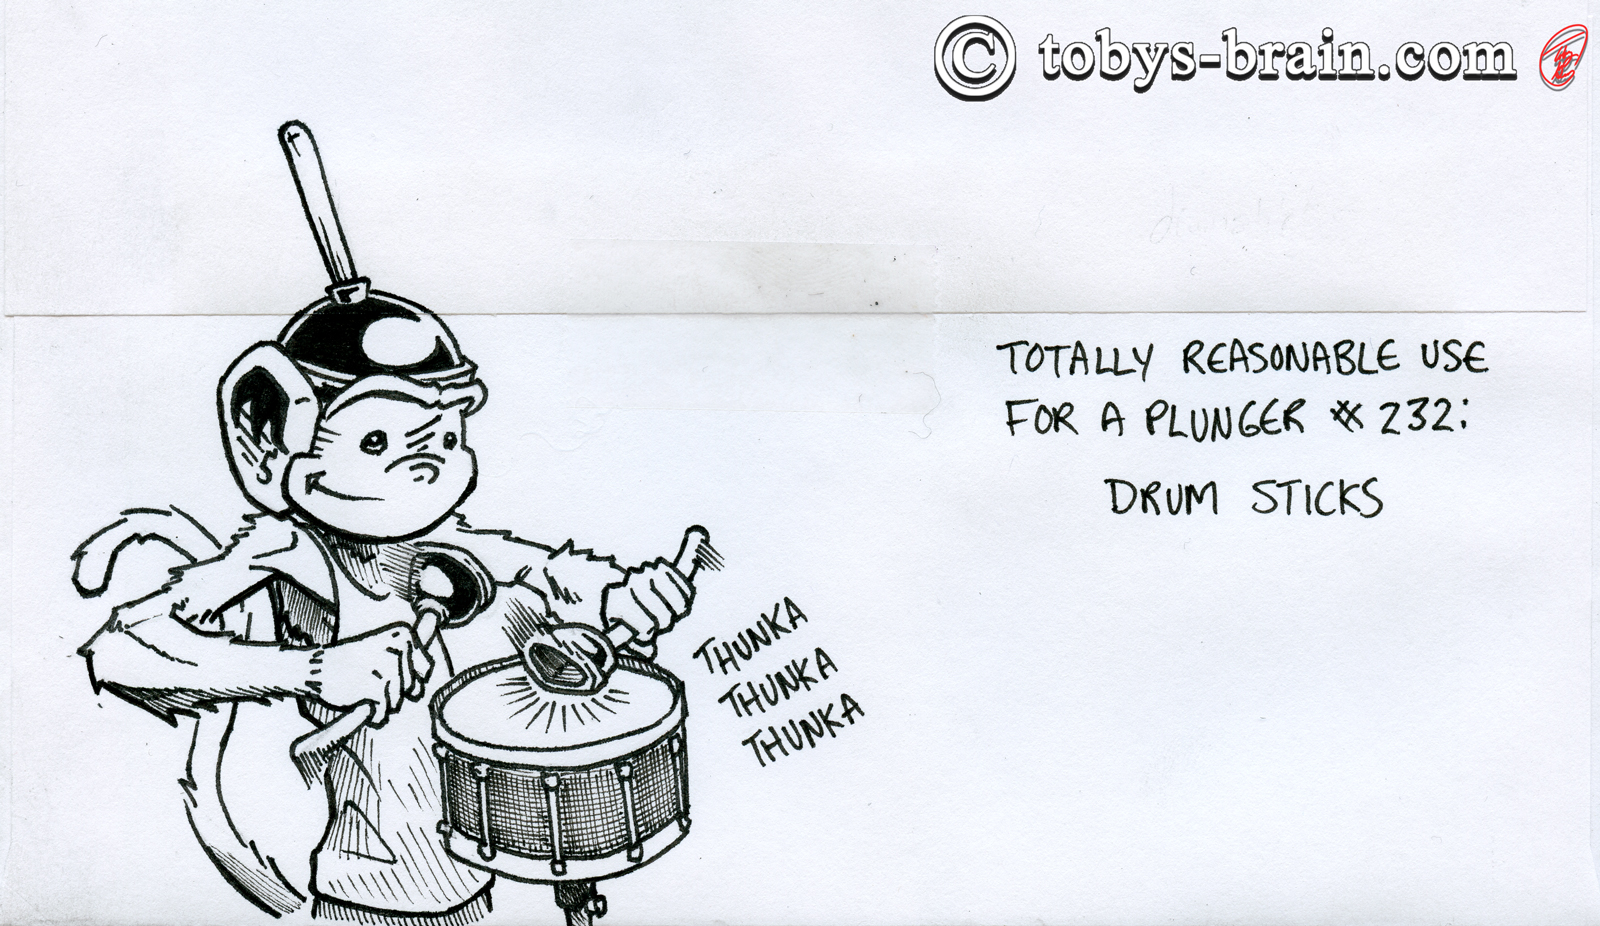 PMD Xmas Card Envelopes 2020: Plunger Drum Sticks